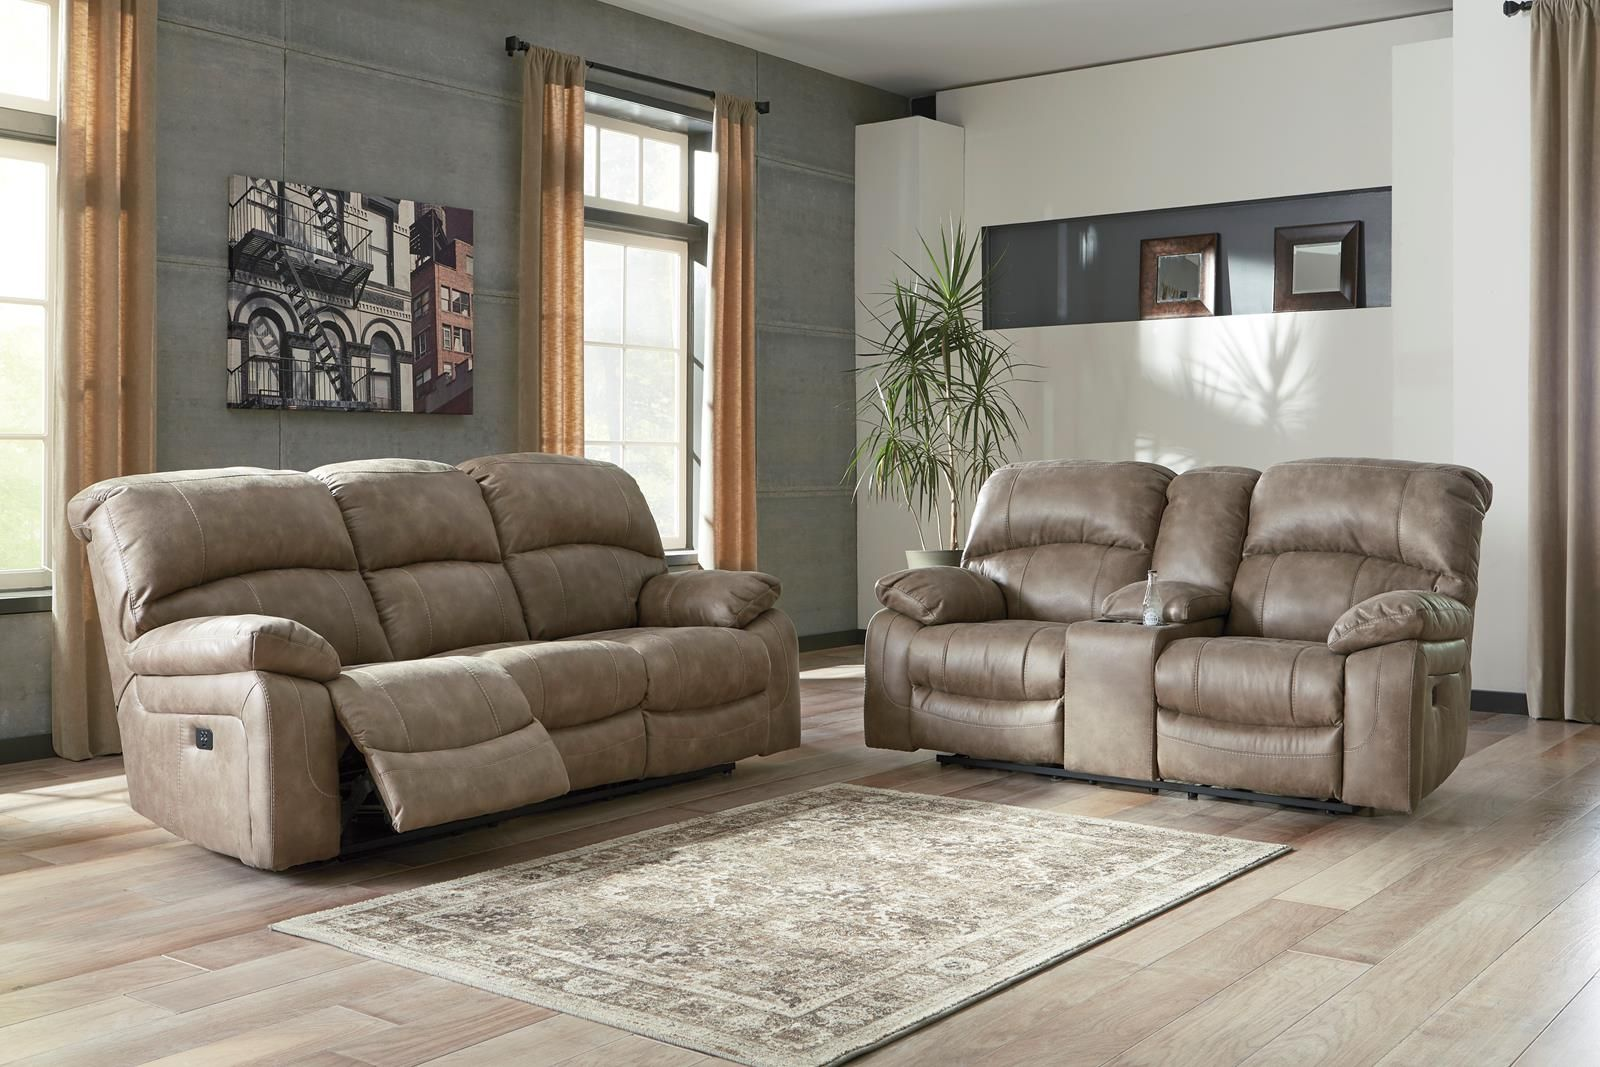 Dunwell 2 Piece Power Recliner Living Room Set In Driftwood Living Room Recliner Living Room Furniture Recliner Reclining Sofa #small #recliners #for #living #room